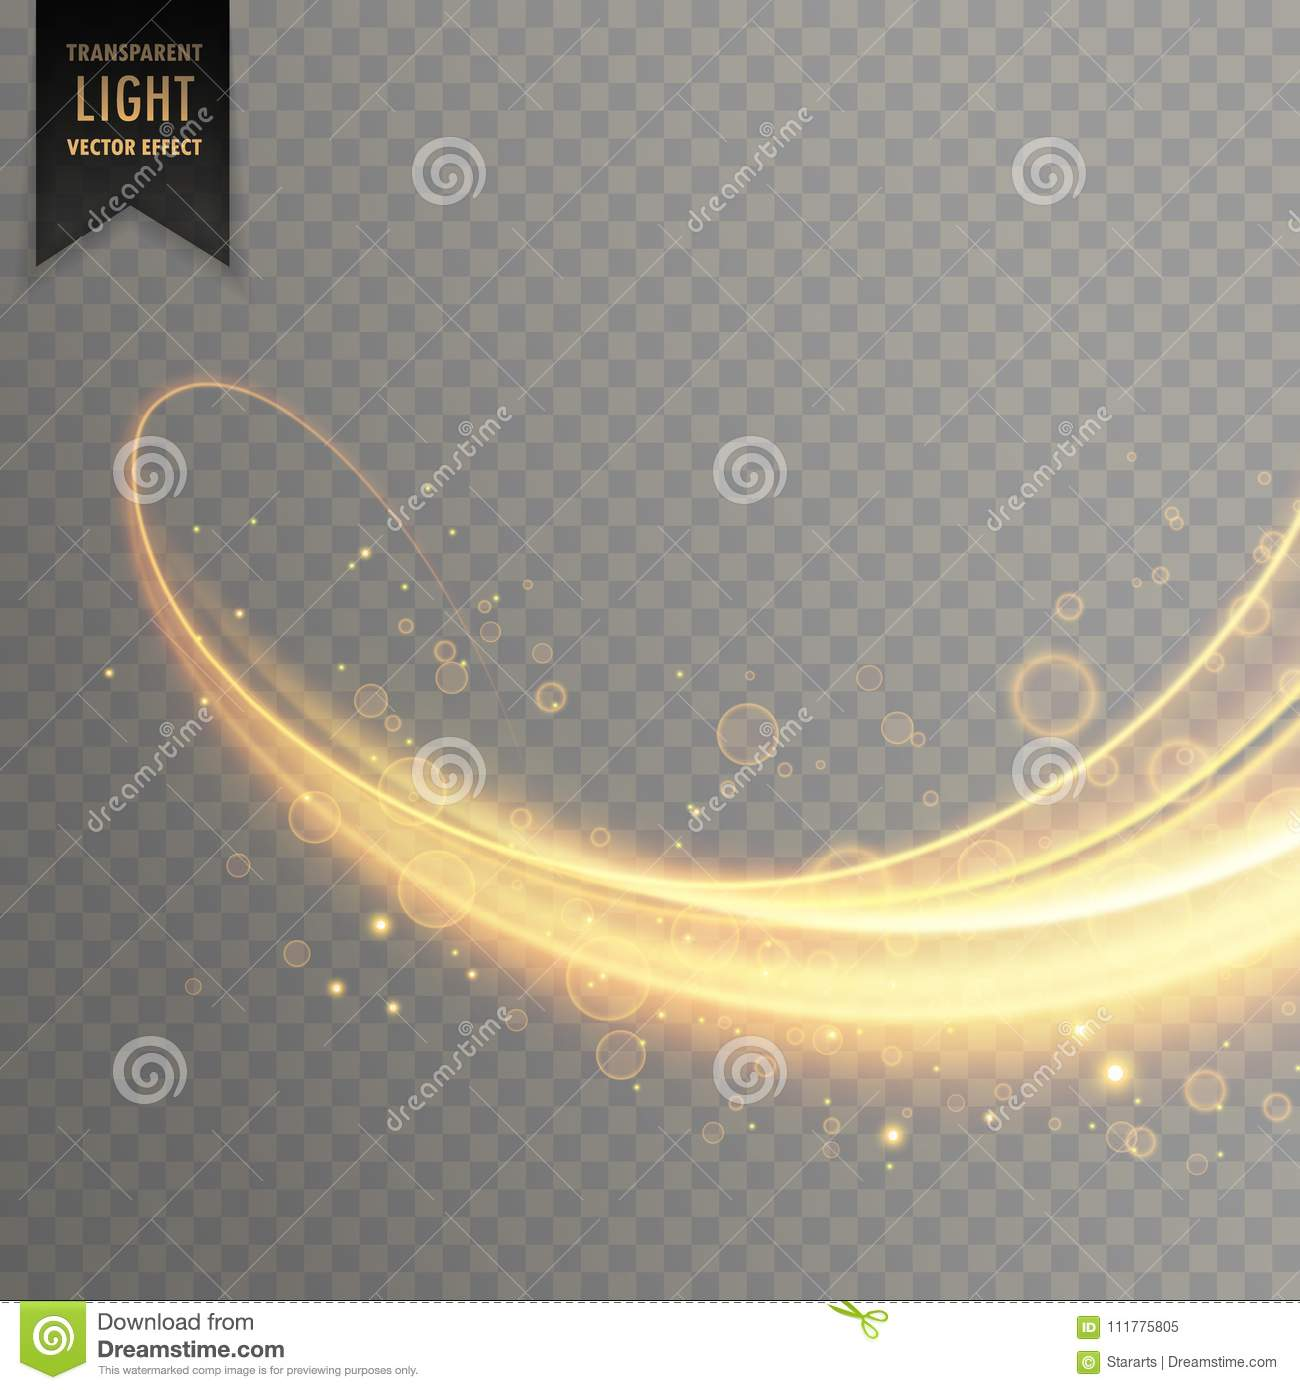 Glowing transparent light effect in gold color